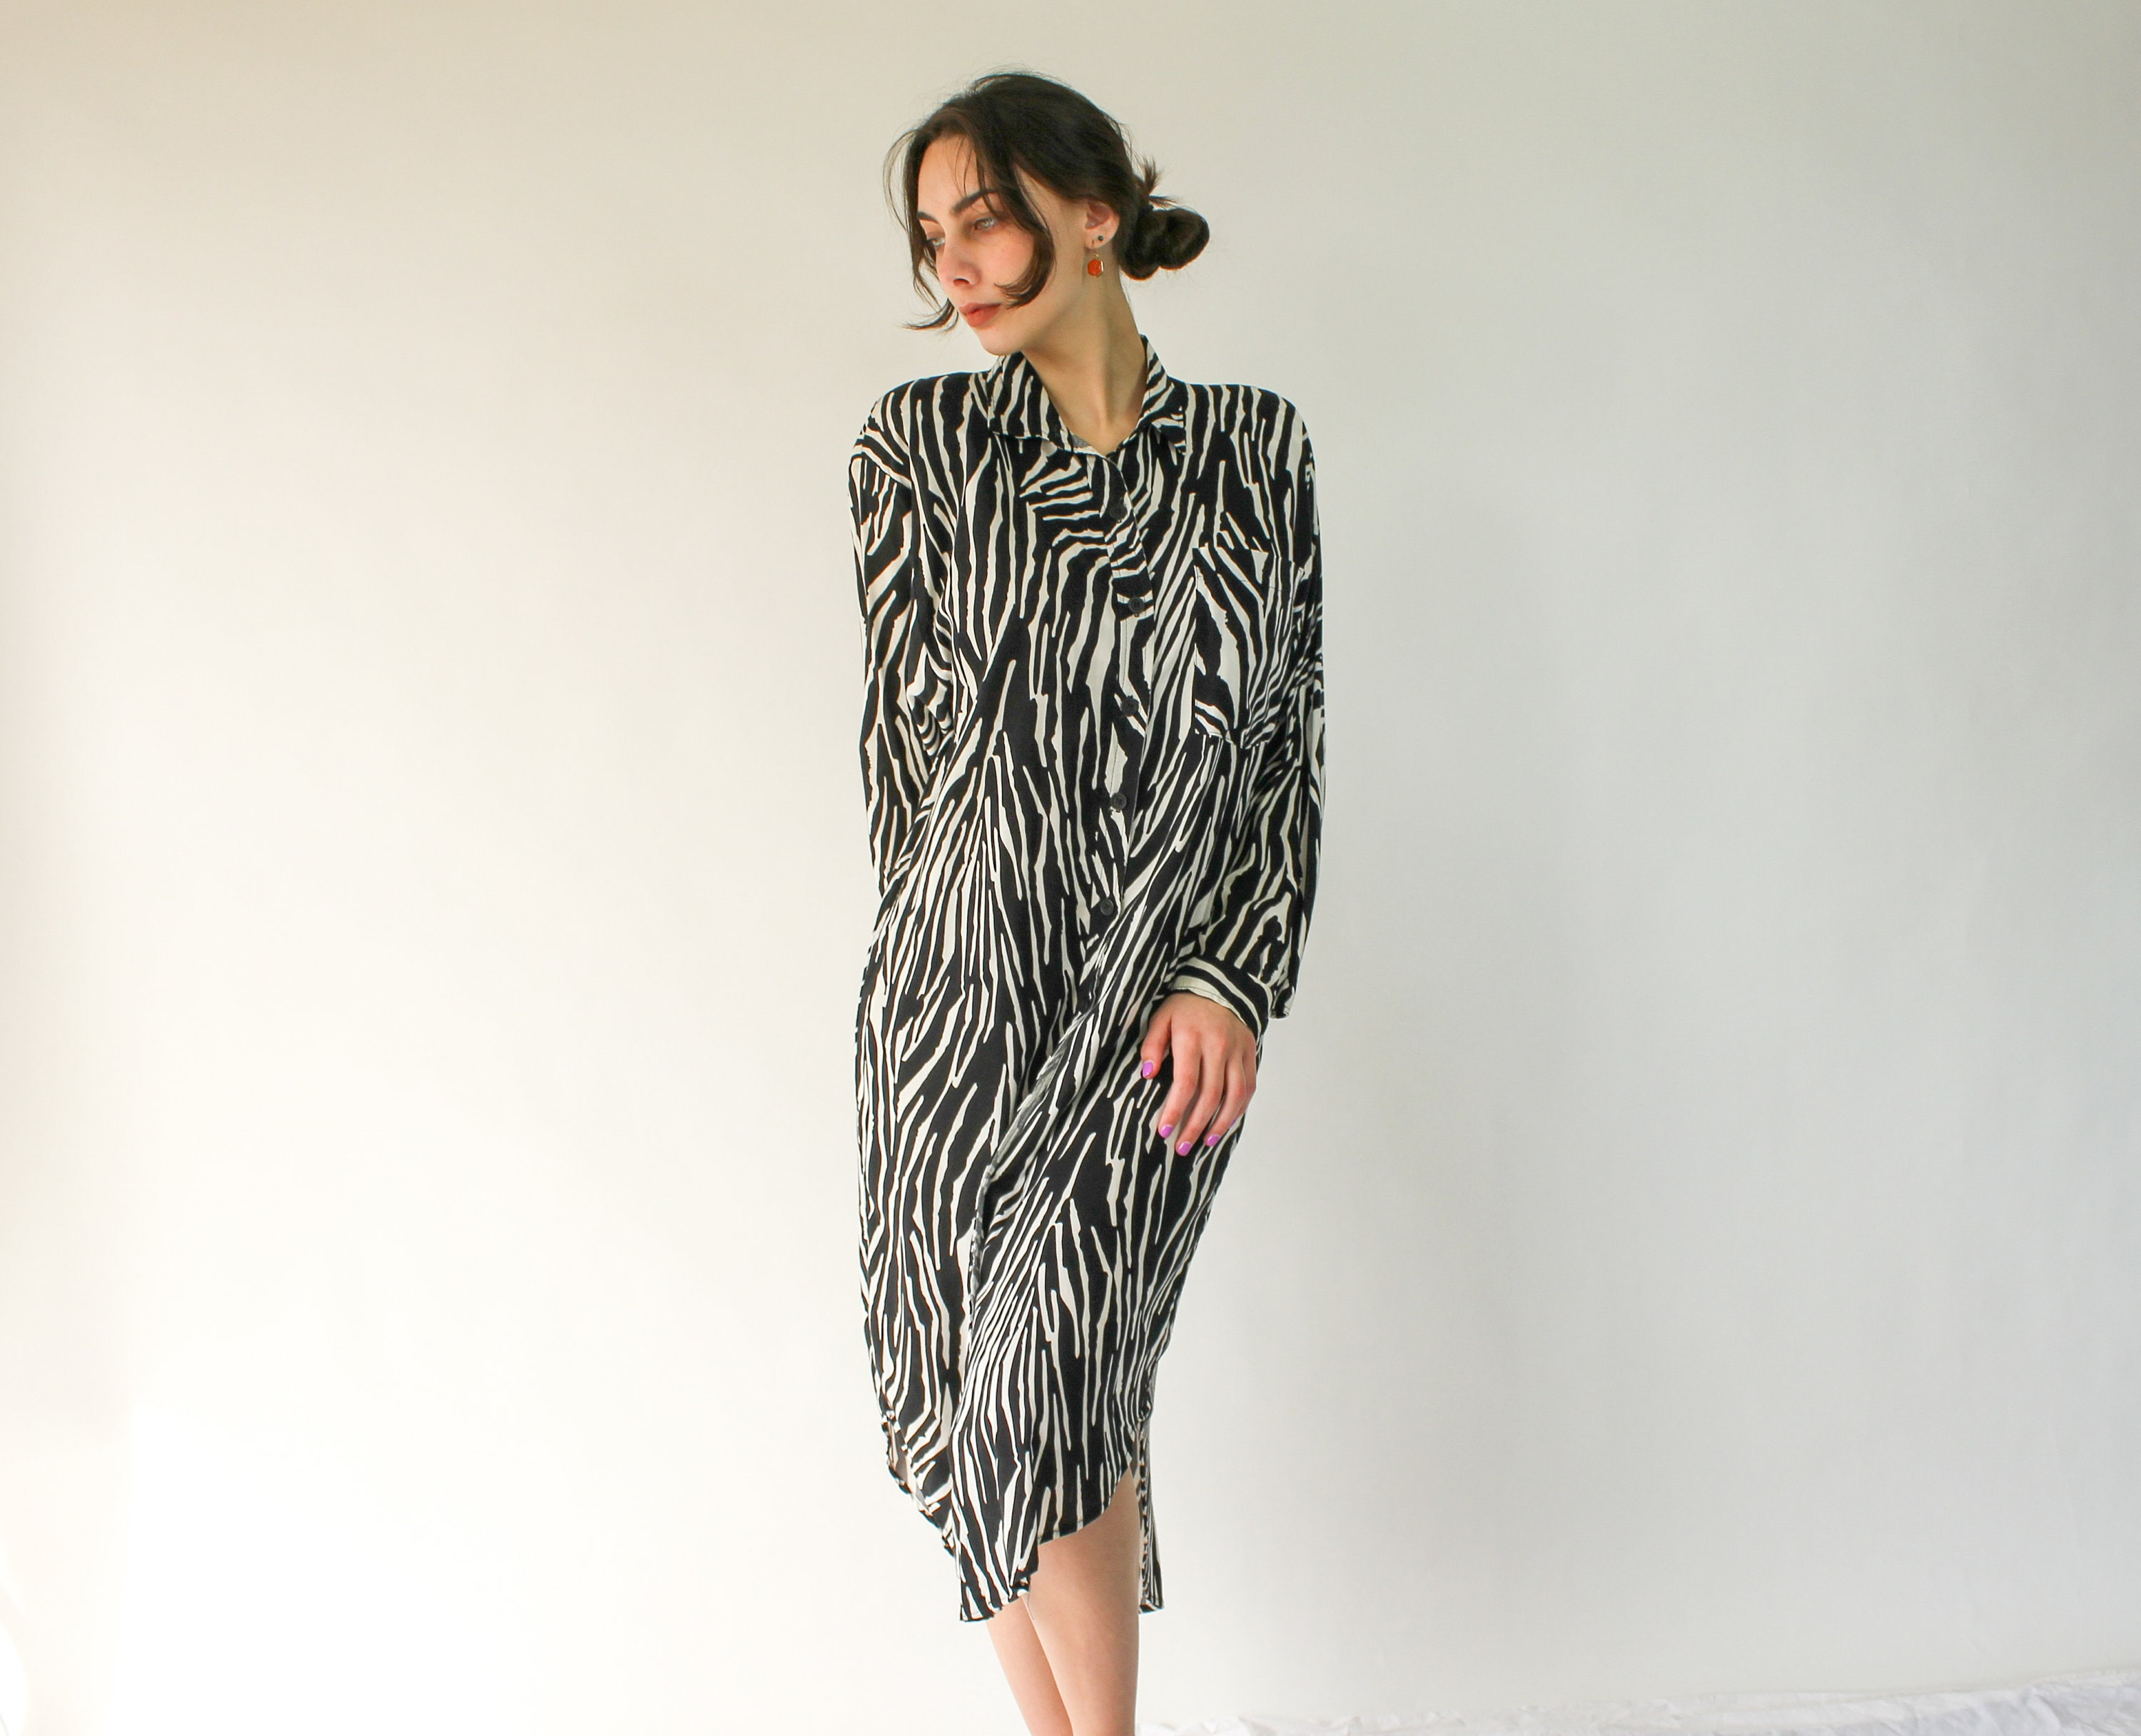 80s Dresses   Casual to Party Dresses Vintage 80S California Krush Zebra Print Rayon Button Up Midi Shirt Dress with Broad Shoulders  Made in Usa 100 1980S Boho $22.95 AT vintagedancer.com